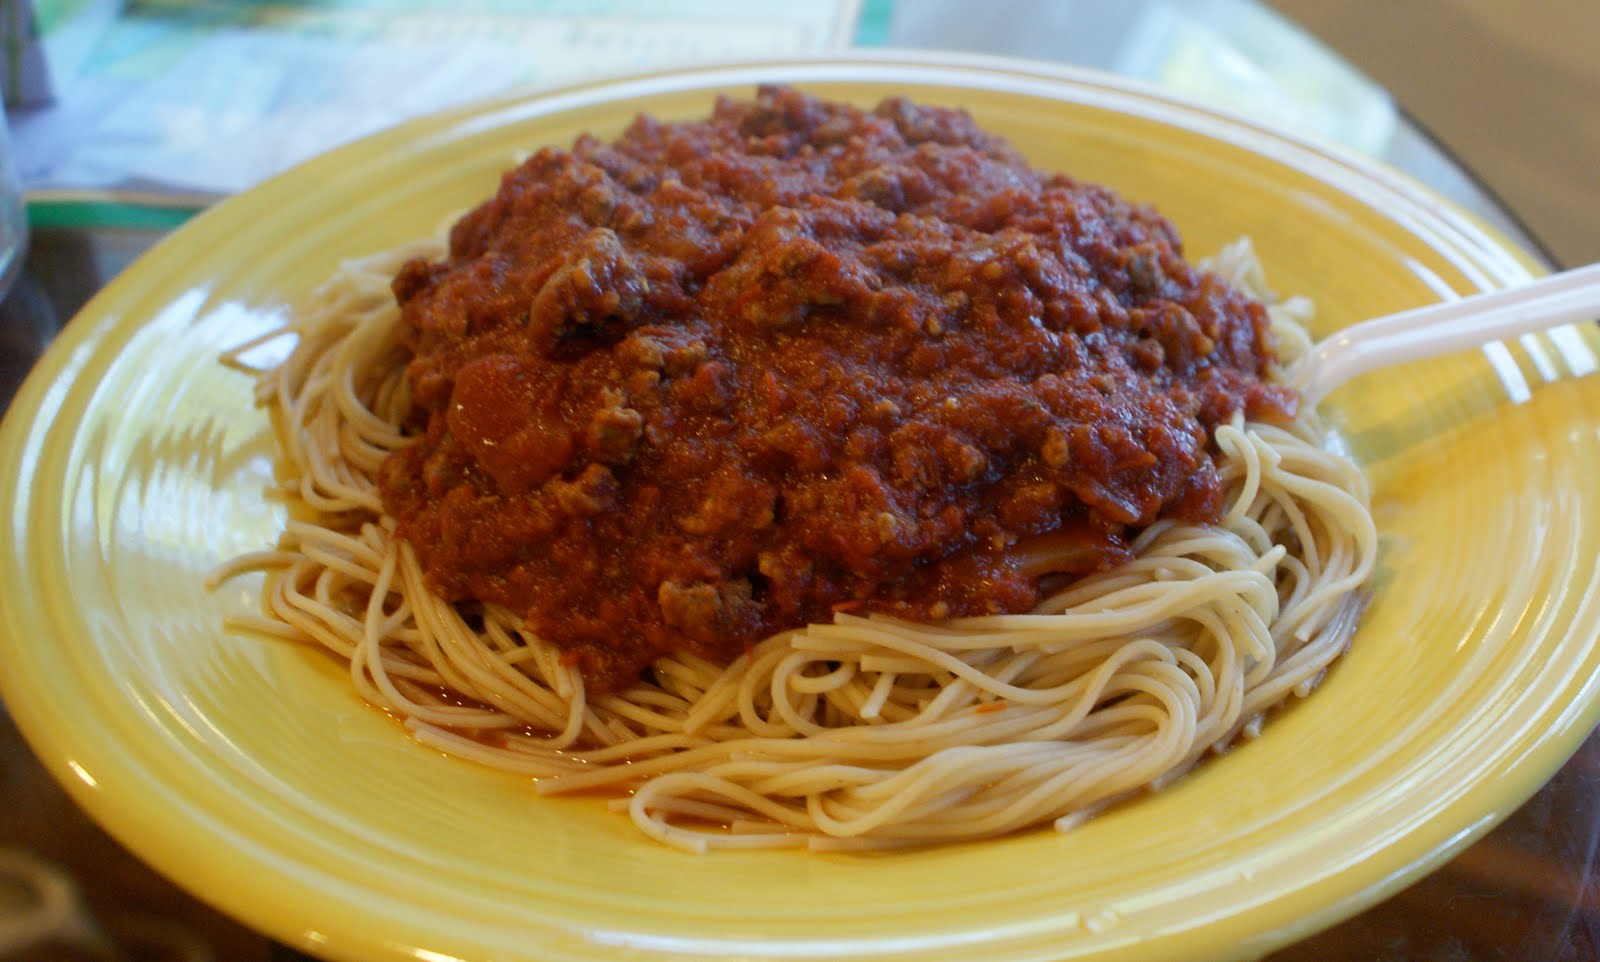 Olive Garden Spaghetti Sauce The Never Ending Pasta Bowl Is Back At Olive Garden Foodbeat